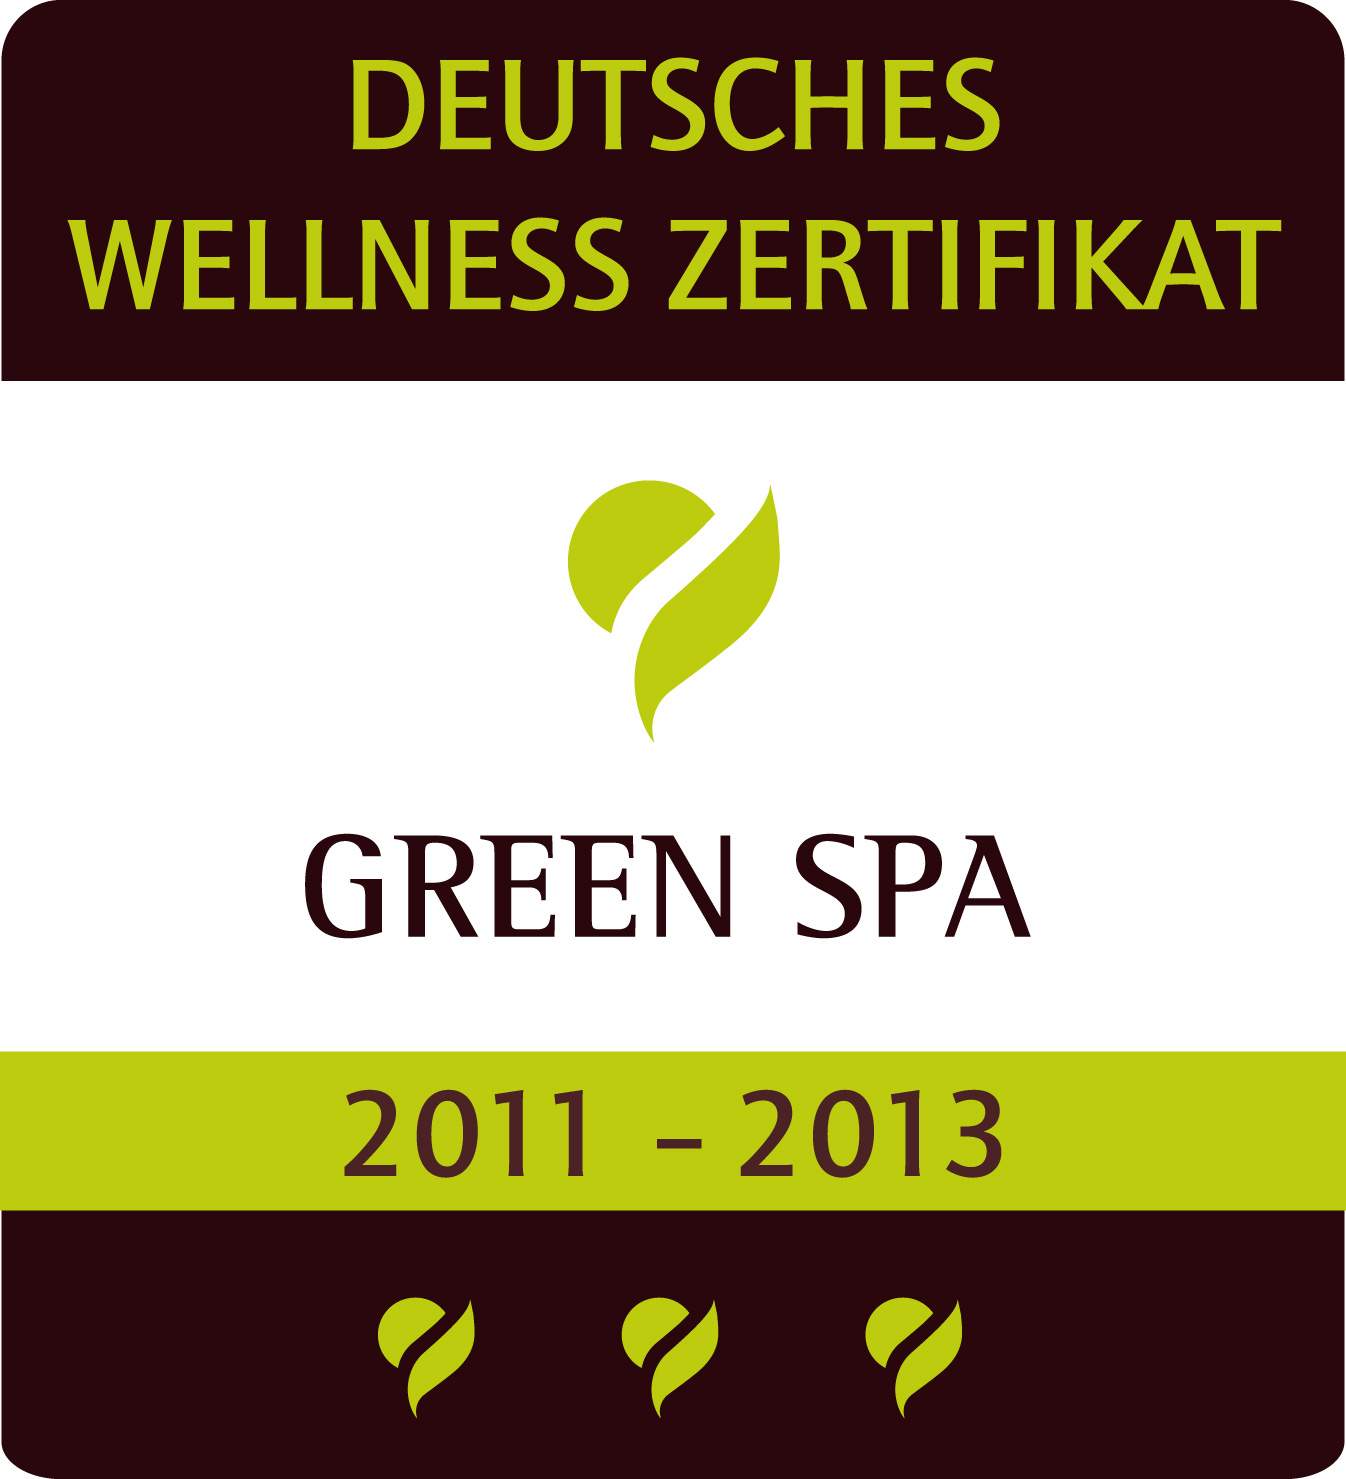 GREEN SPA ZERTIFIKAT